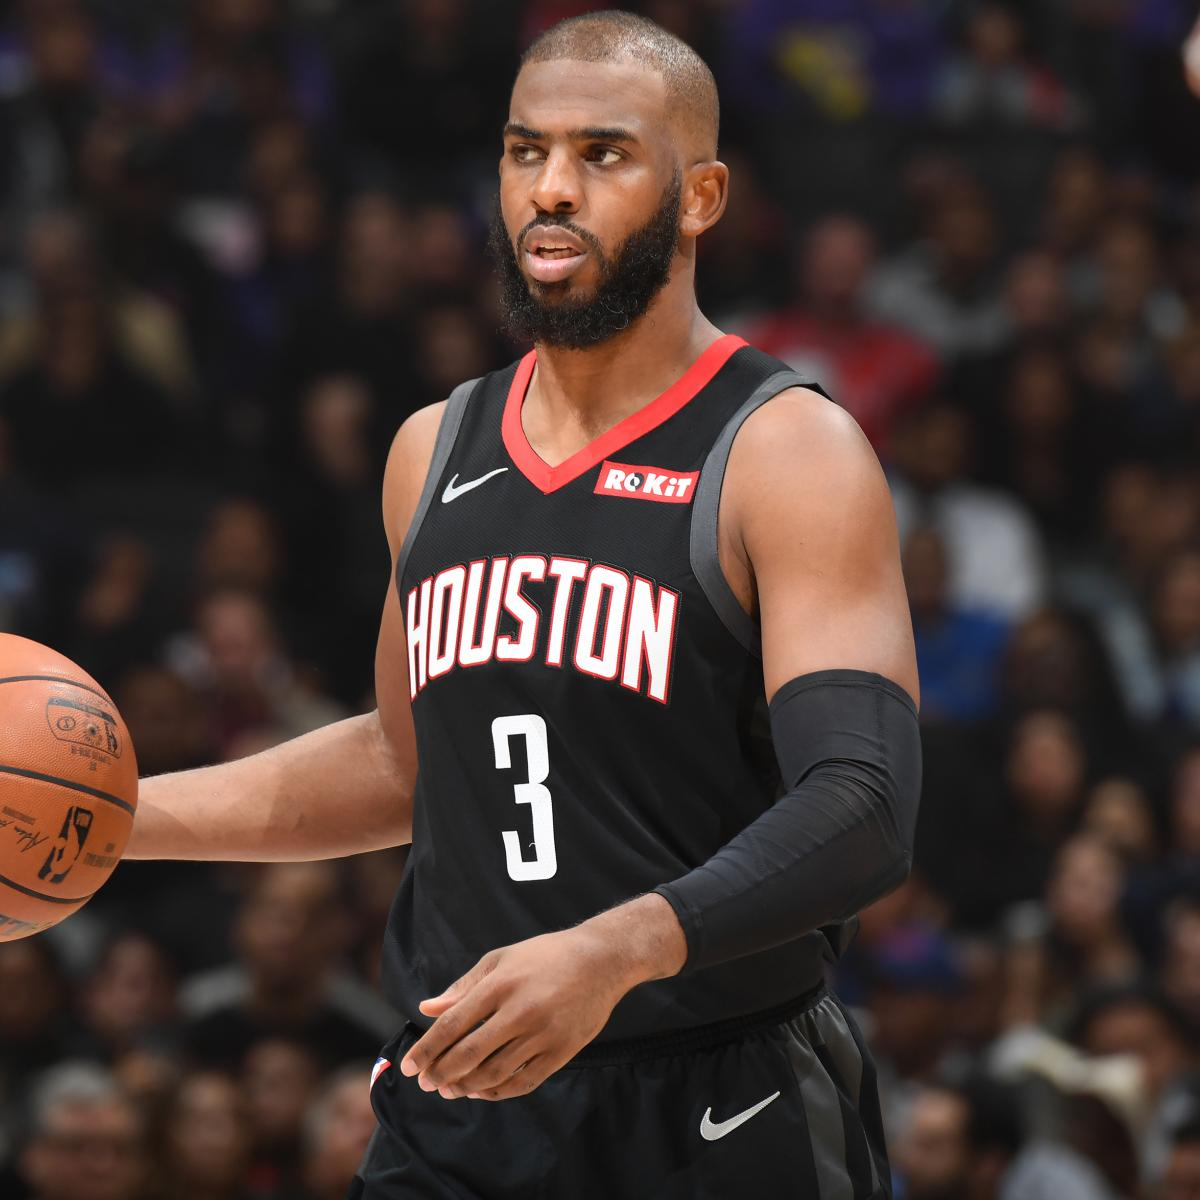 Houston Rockets News Today: Chris Paul On Rumors He Wants To Leave Rockets: 'I'll Be